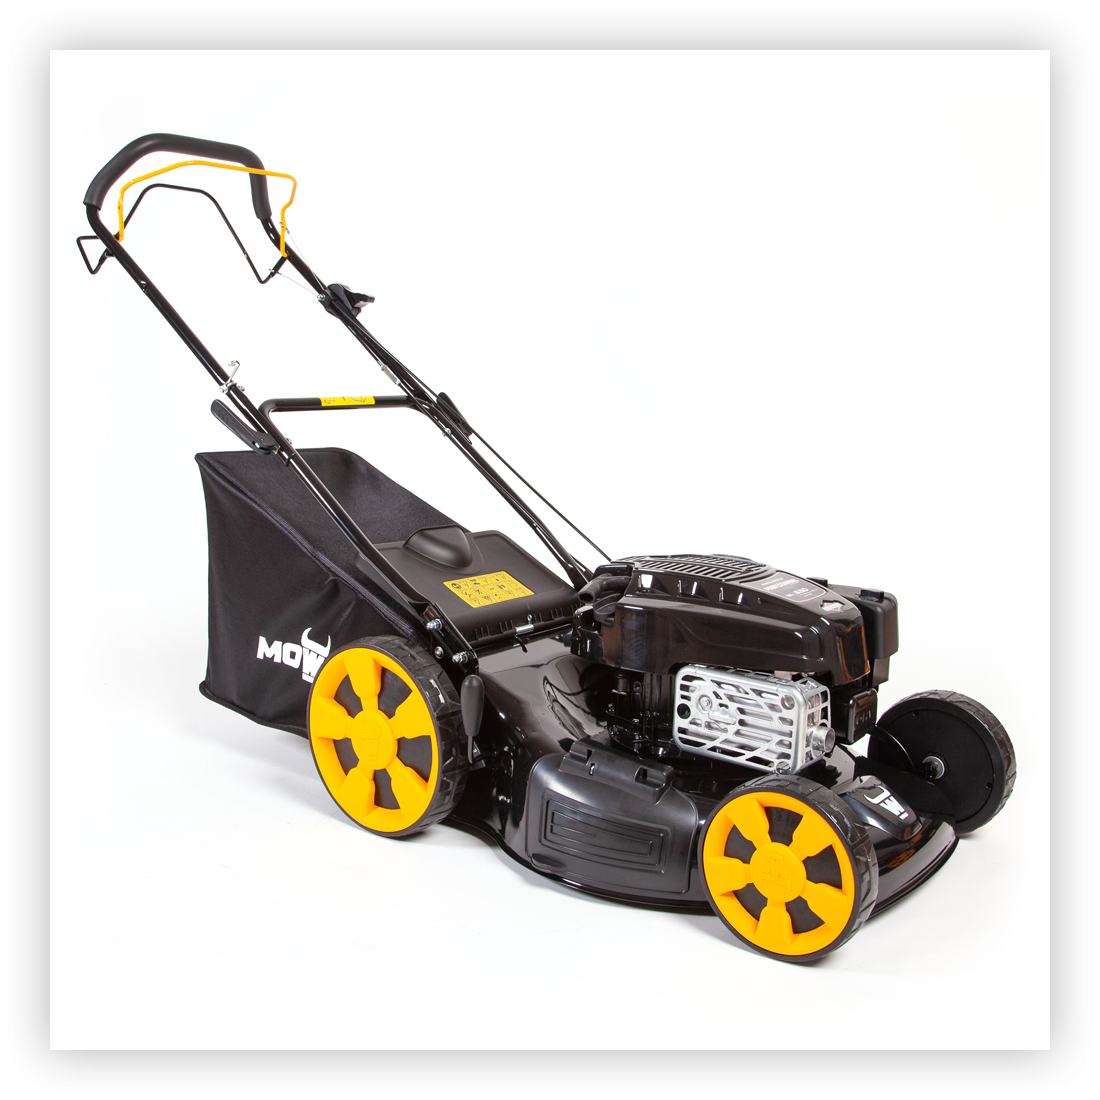 Mowox 1520 EN Professional Gas Mower